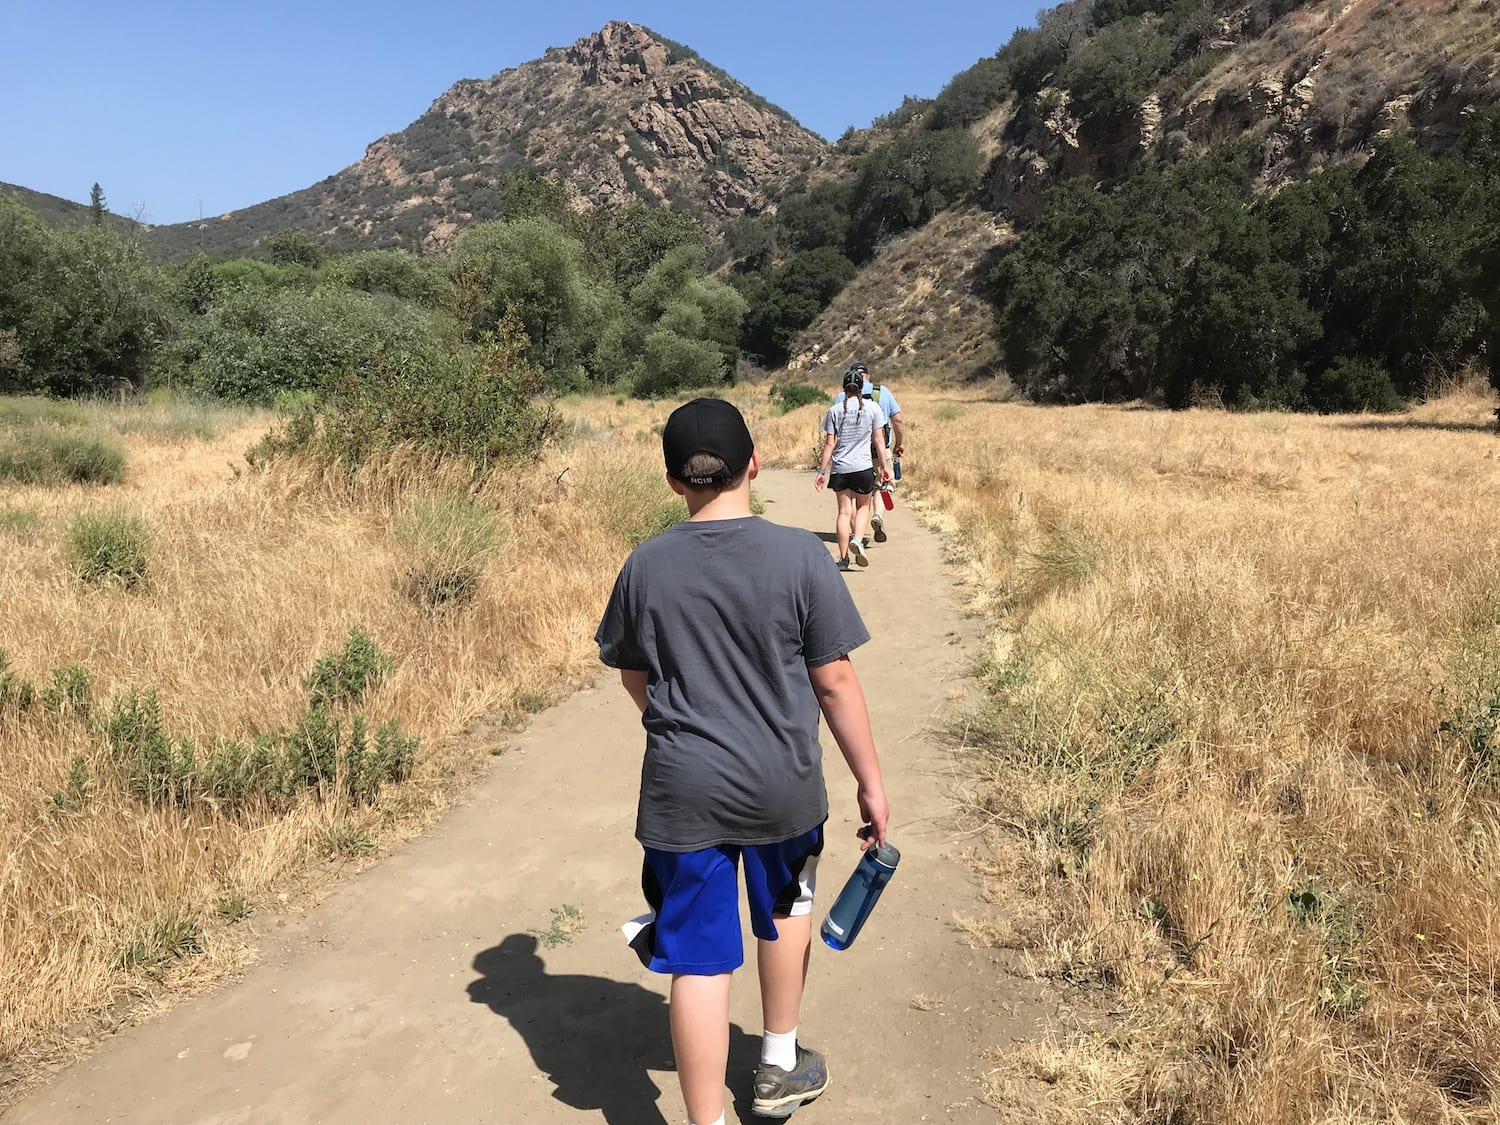 Hiking at Malibu Creek State Park